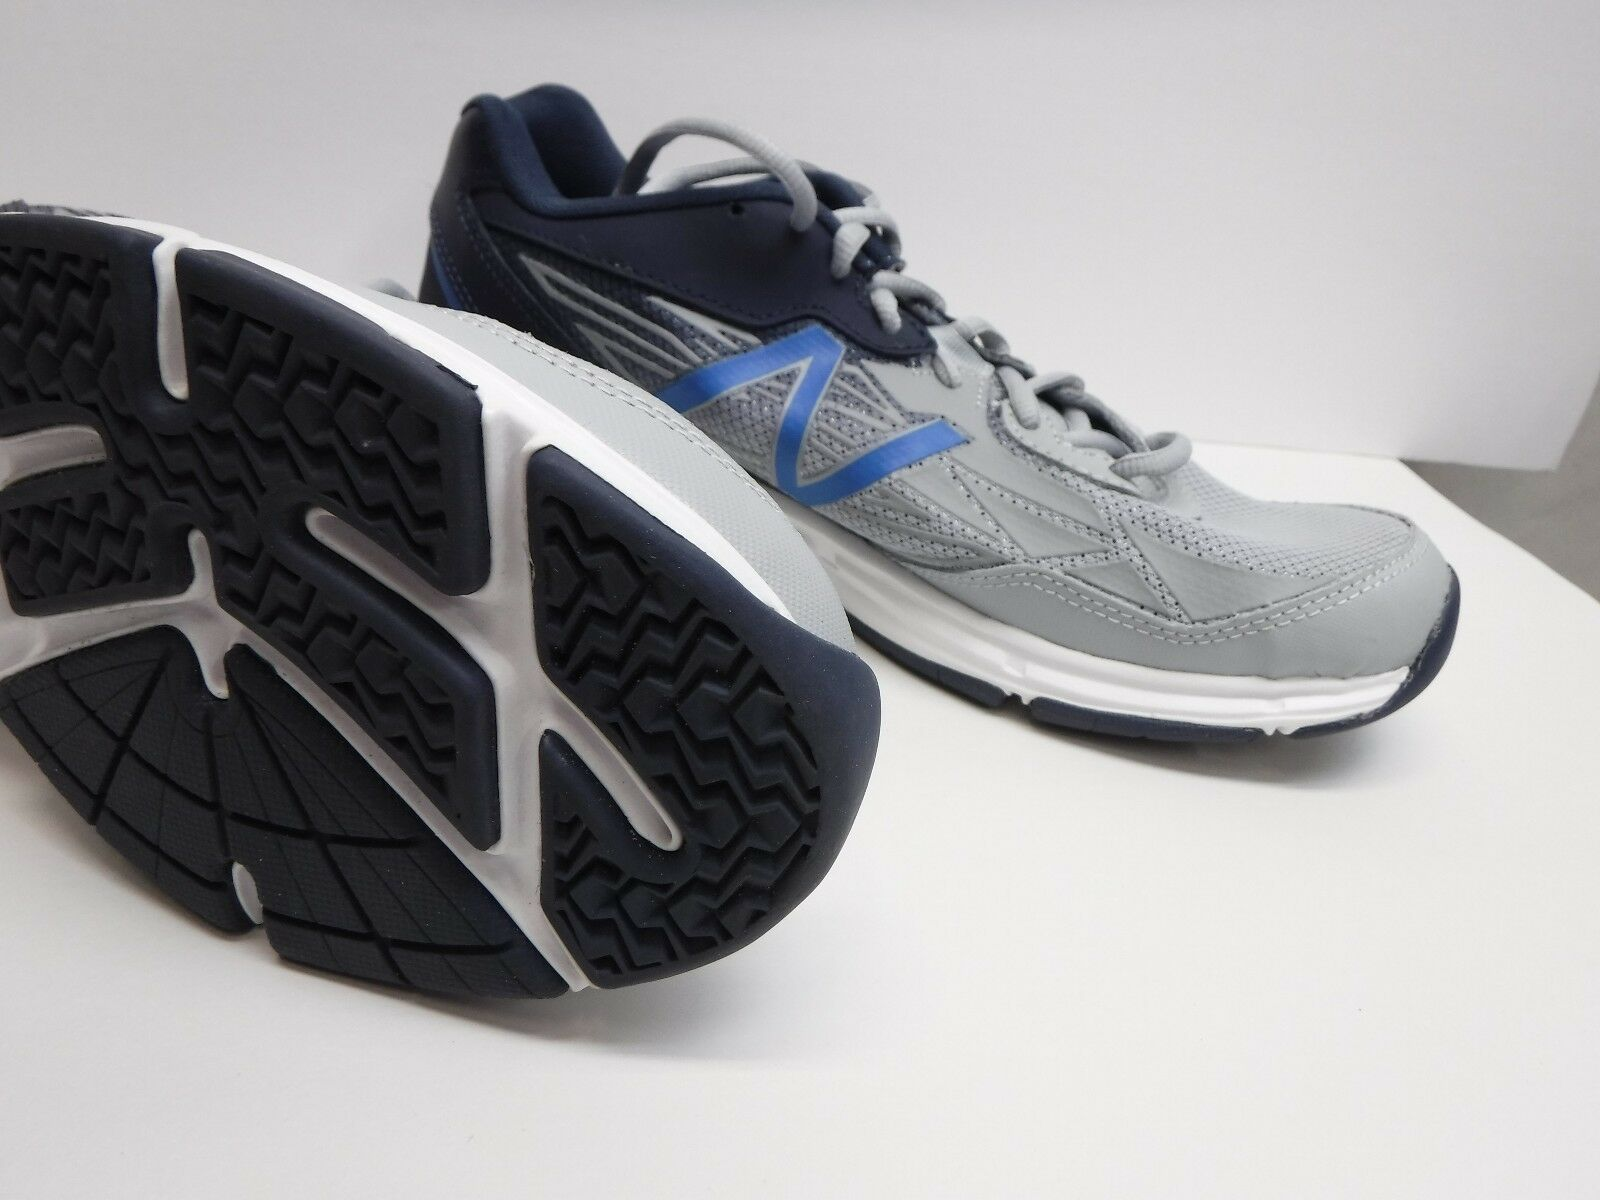 New Balance Größe 8.5 Gray Schuhes Sneakers New  Uomo Schuhes Gray 8cfb4a